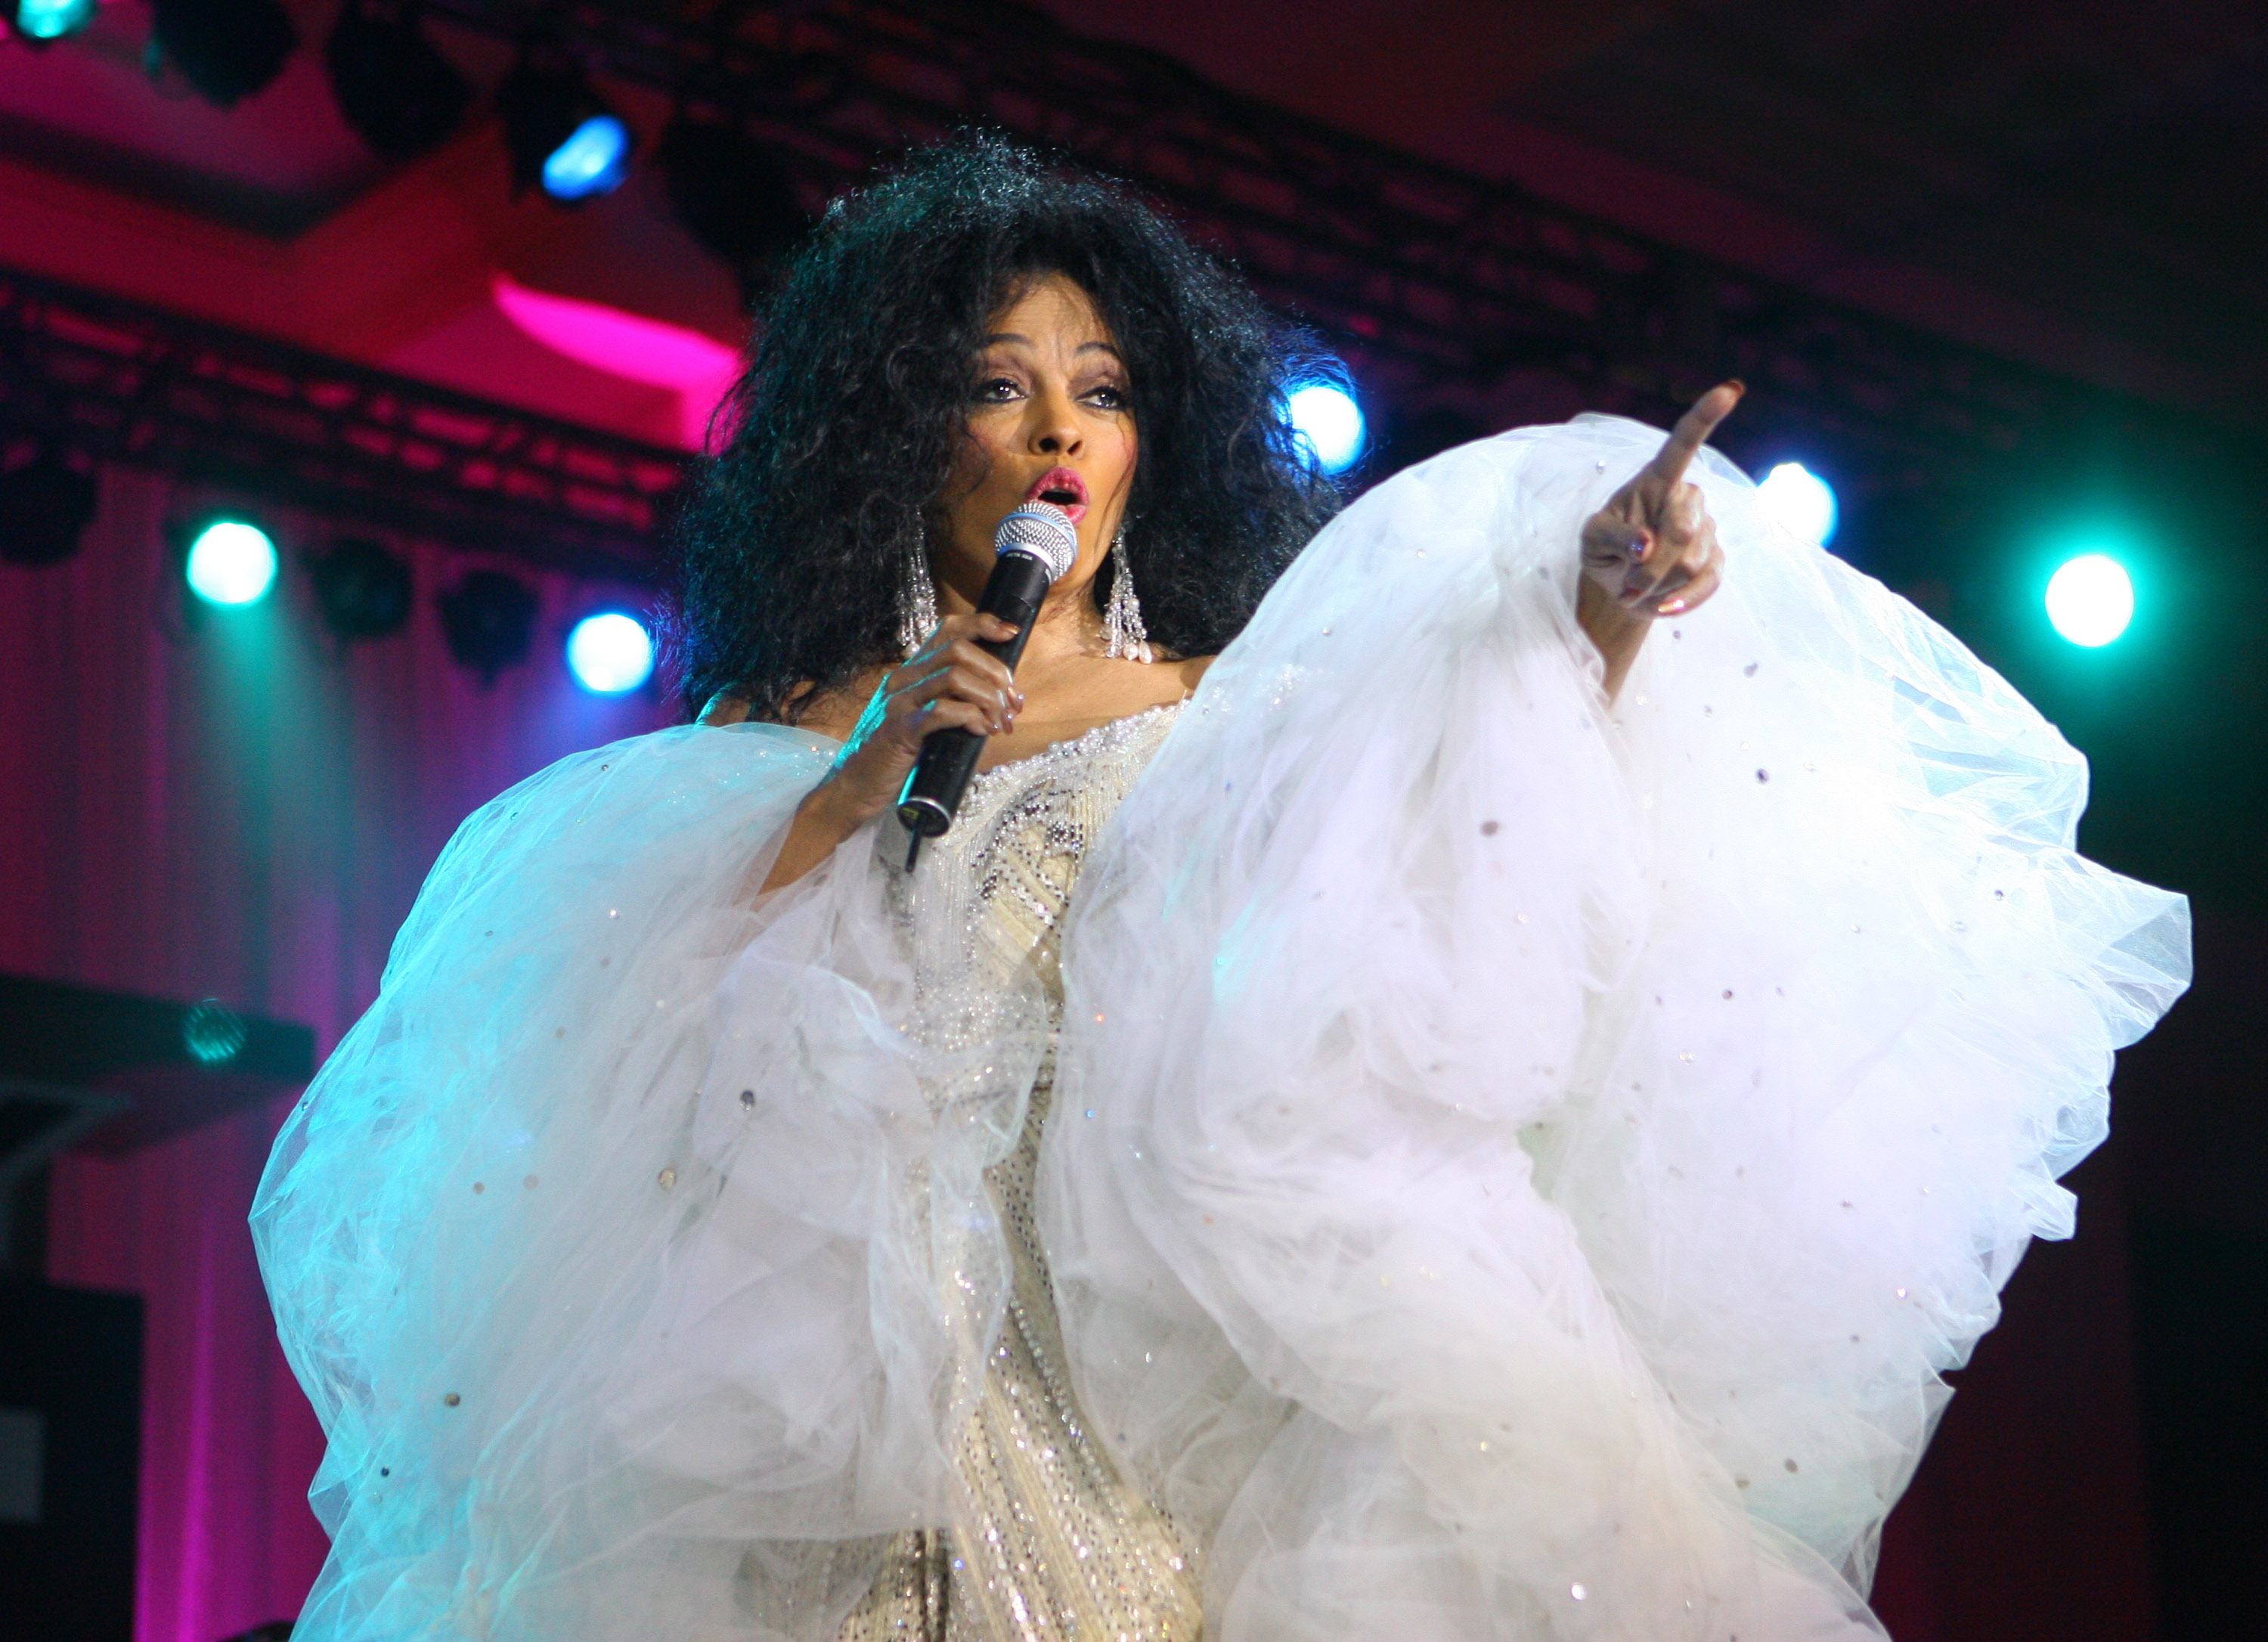 Diana Ross performs at Muhammad Ali's Celebrity Fight Night XIII Show at the Marriott Desert Ridge Resort & Spa in Phoenix, Arizona on March 24, 2007.